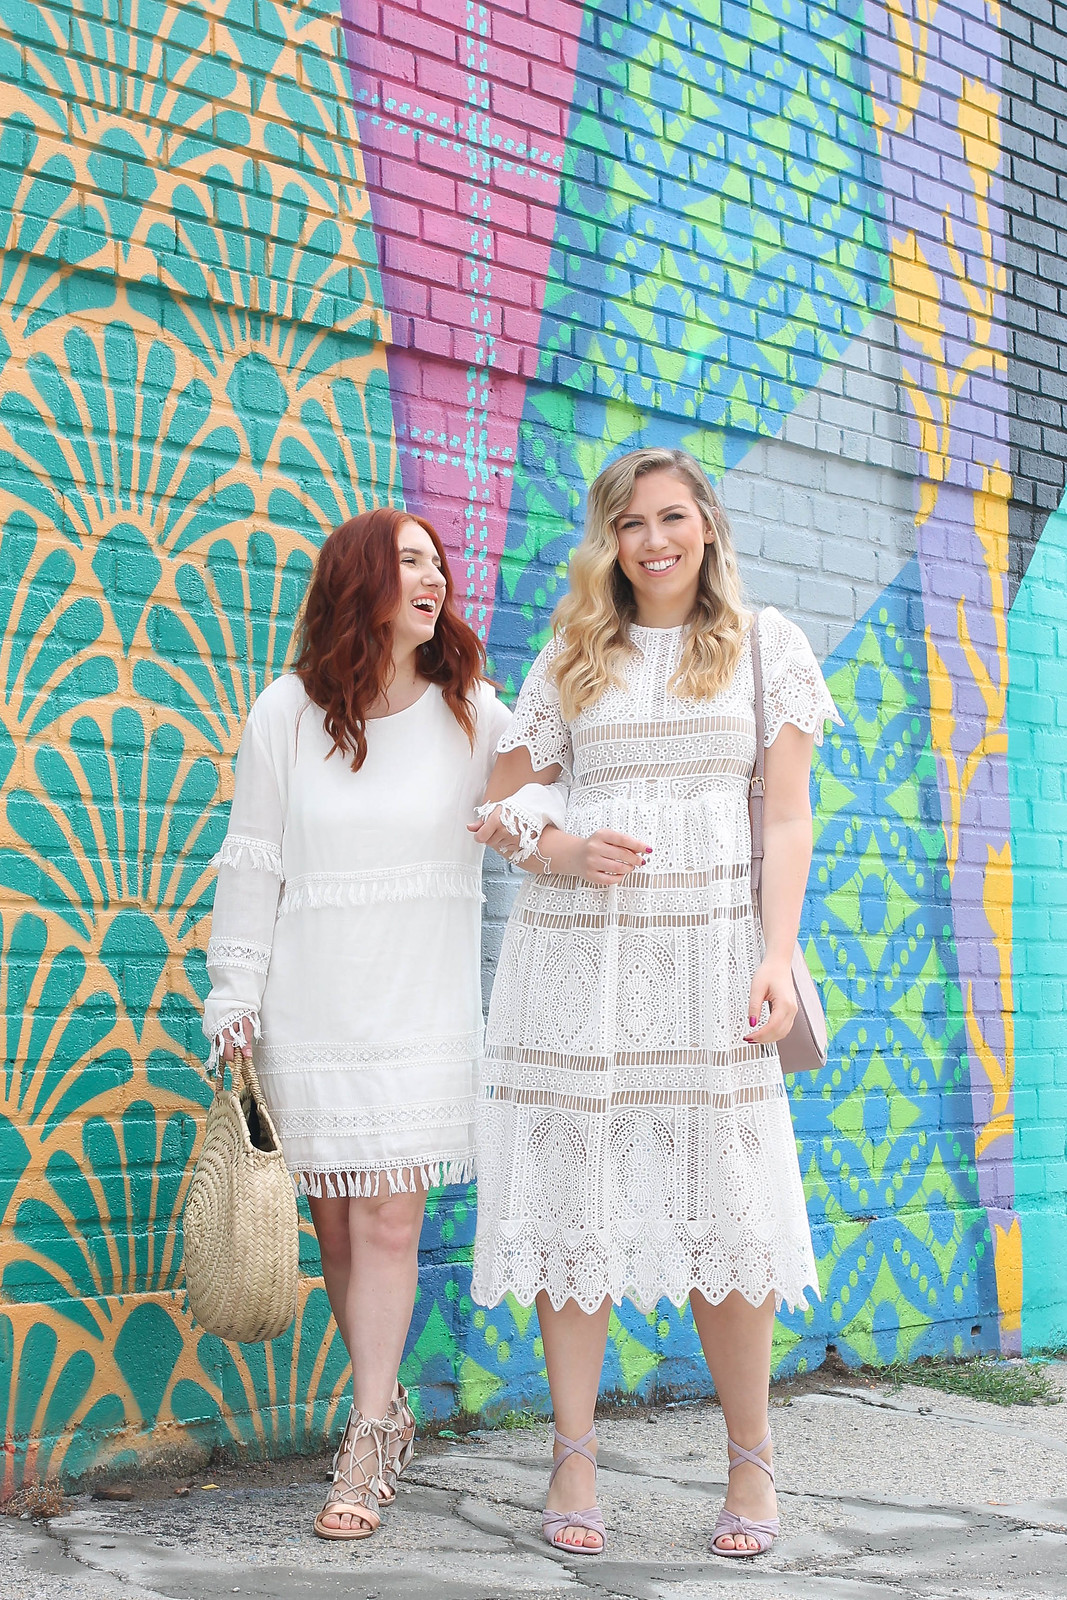 Little White Dress Outfit Inspiration Colorful Wall Astoria New York